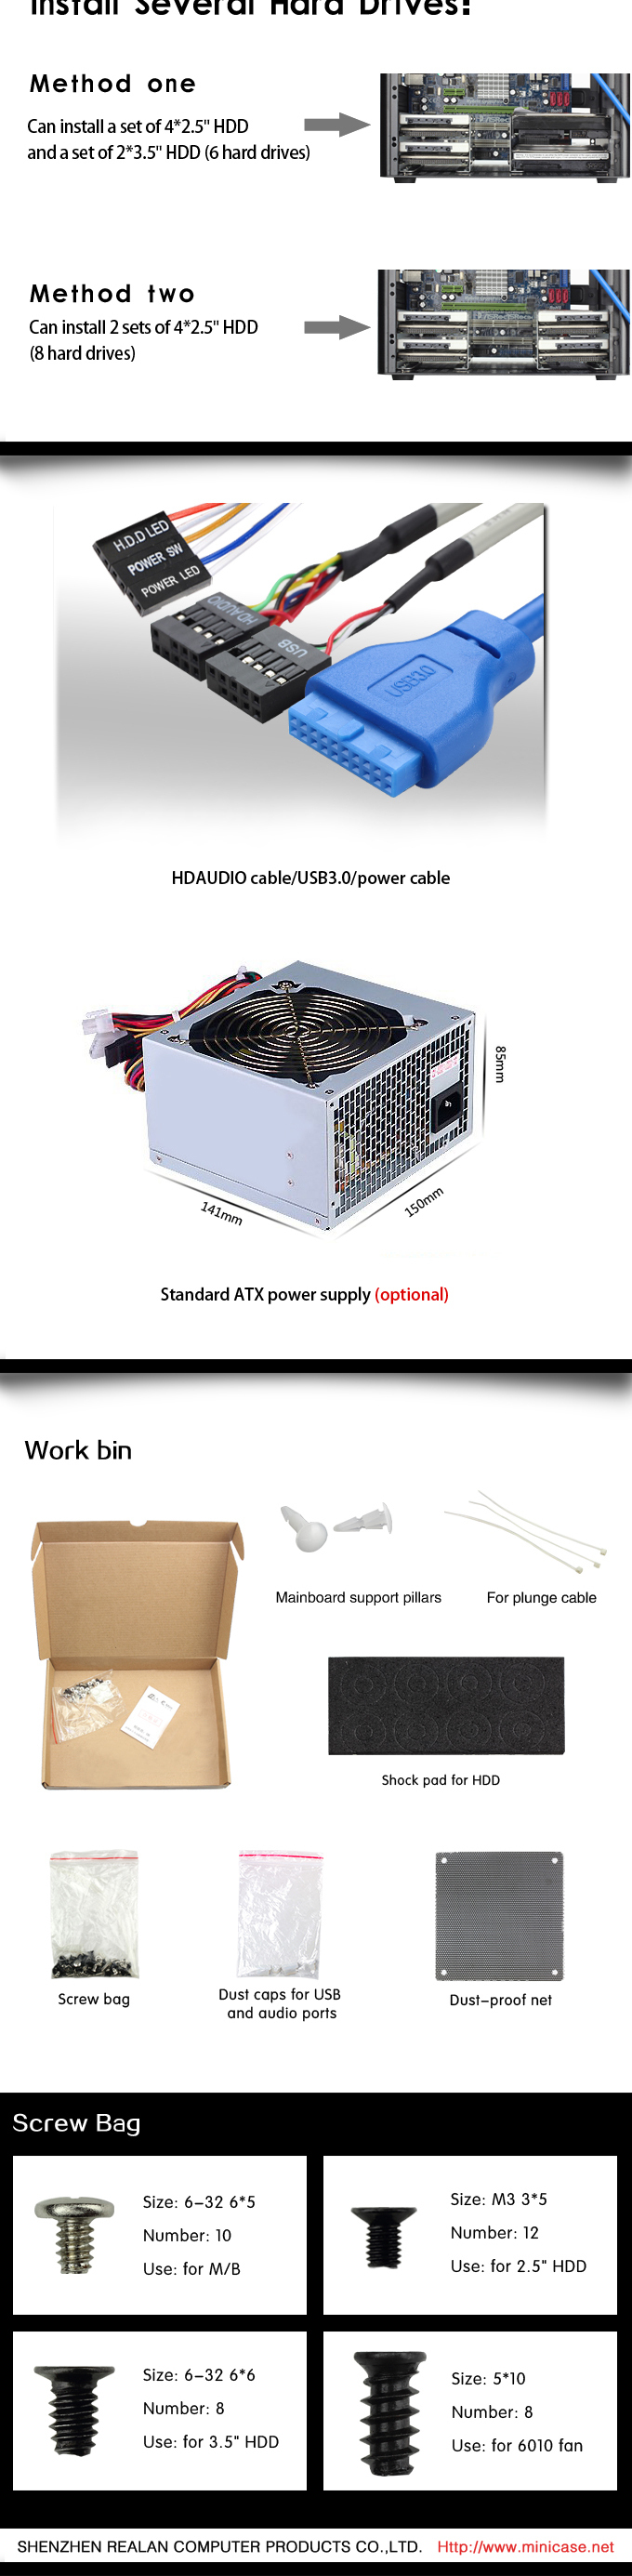 Realan modern oem aluminium custom htpc mini itx gaming pc computer case E-D3 with expansion slots